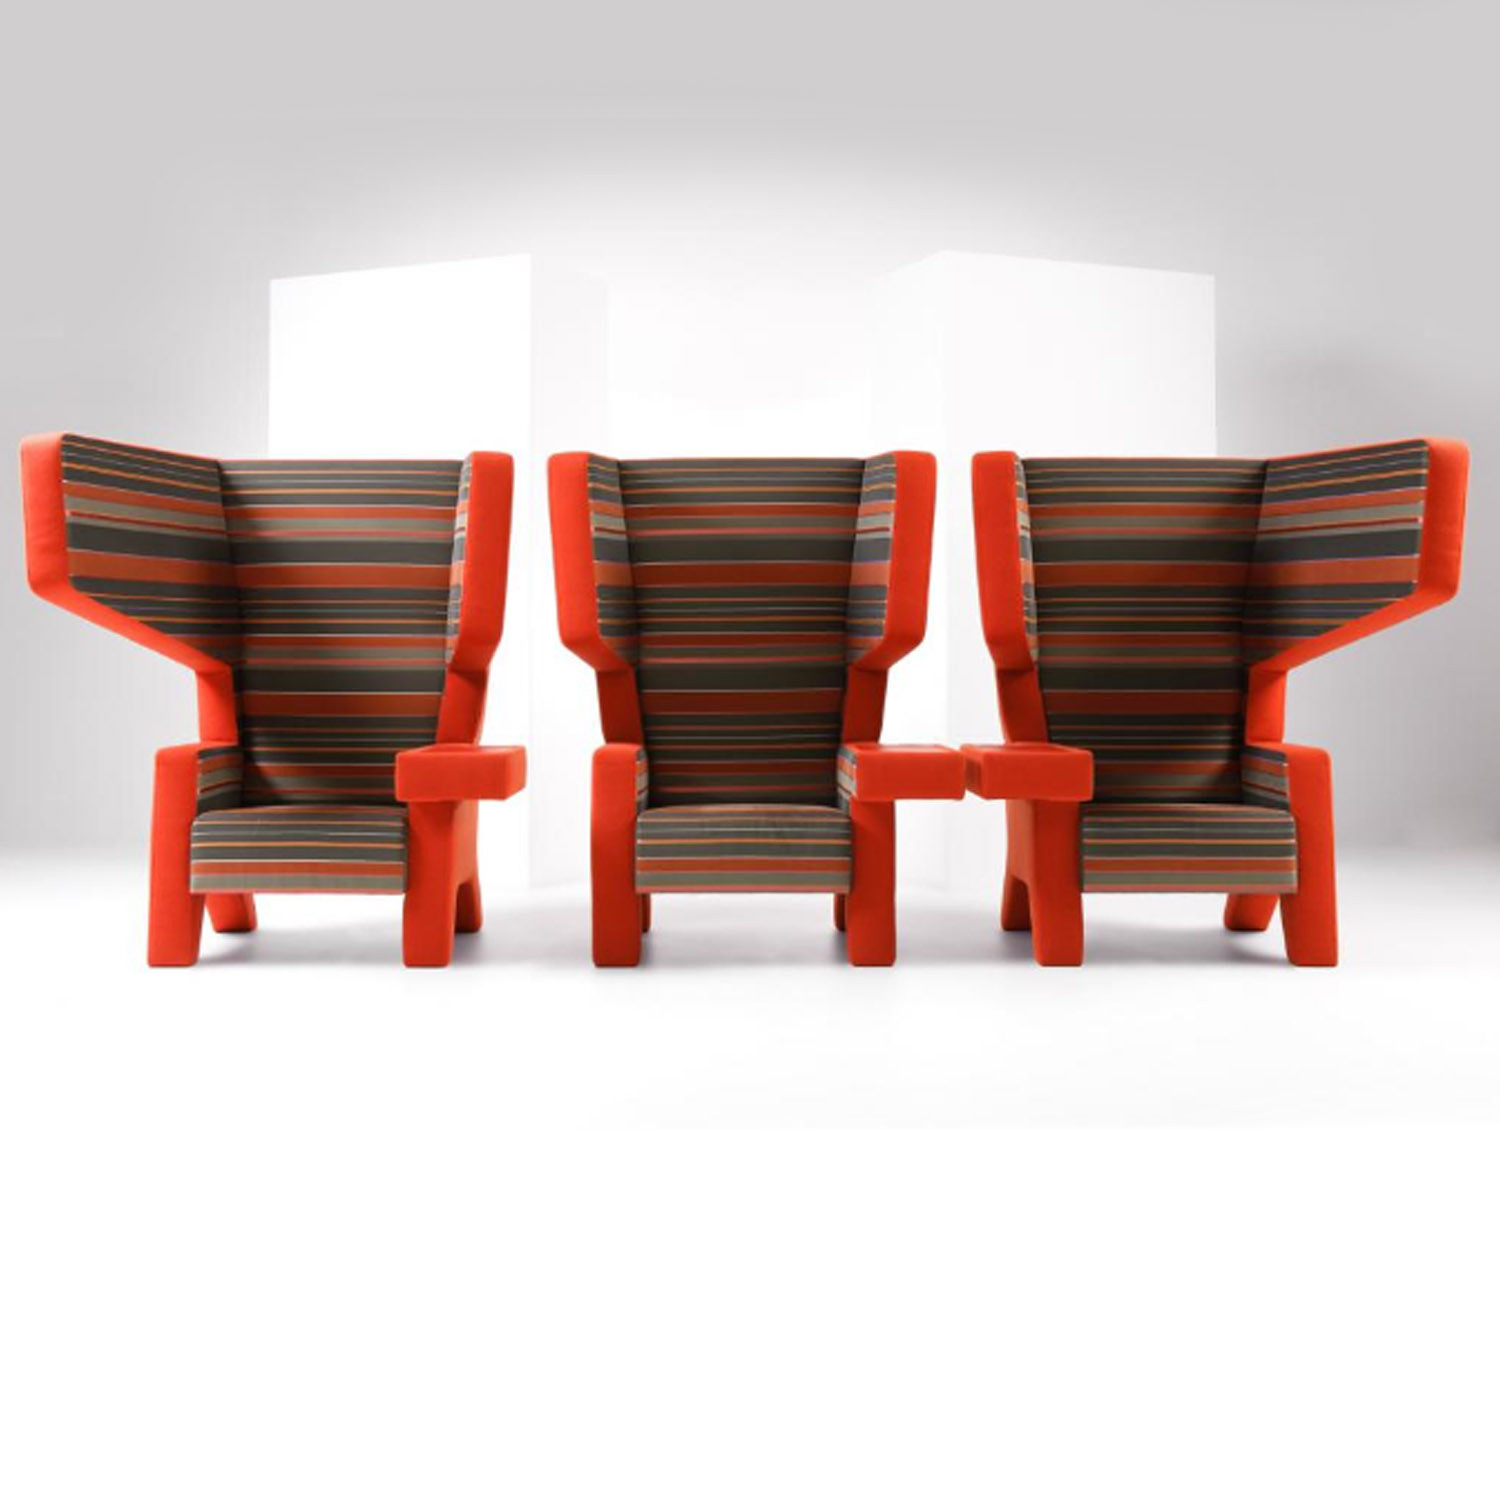 #001 Earchair Armchairs